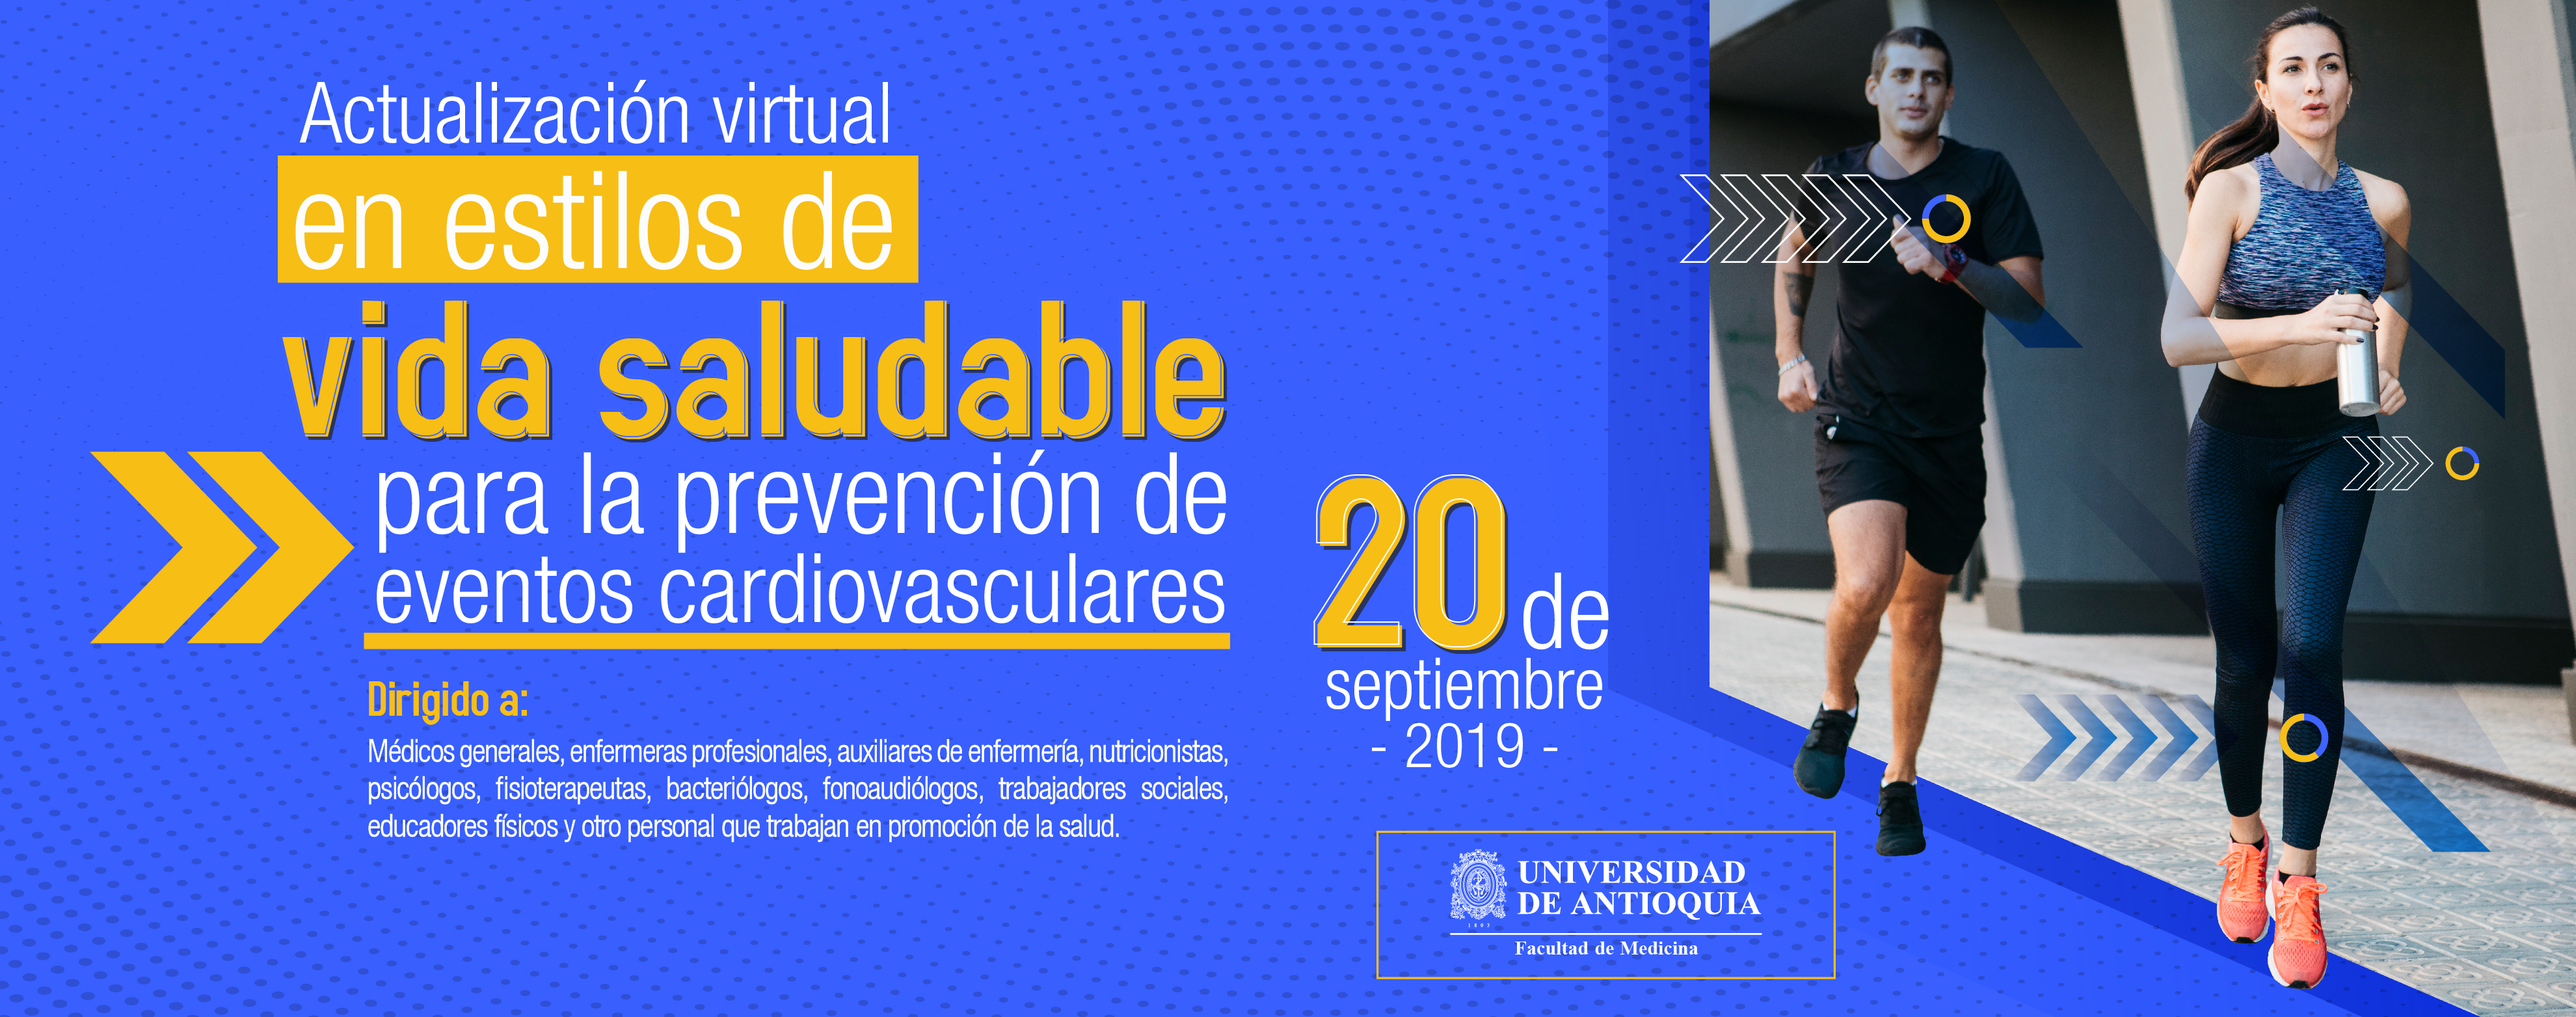 vidasaludable20192